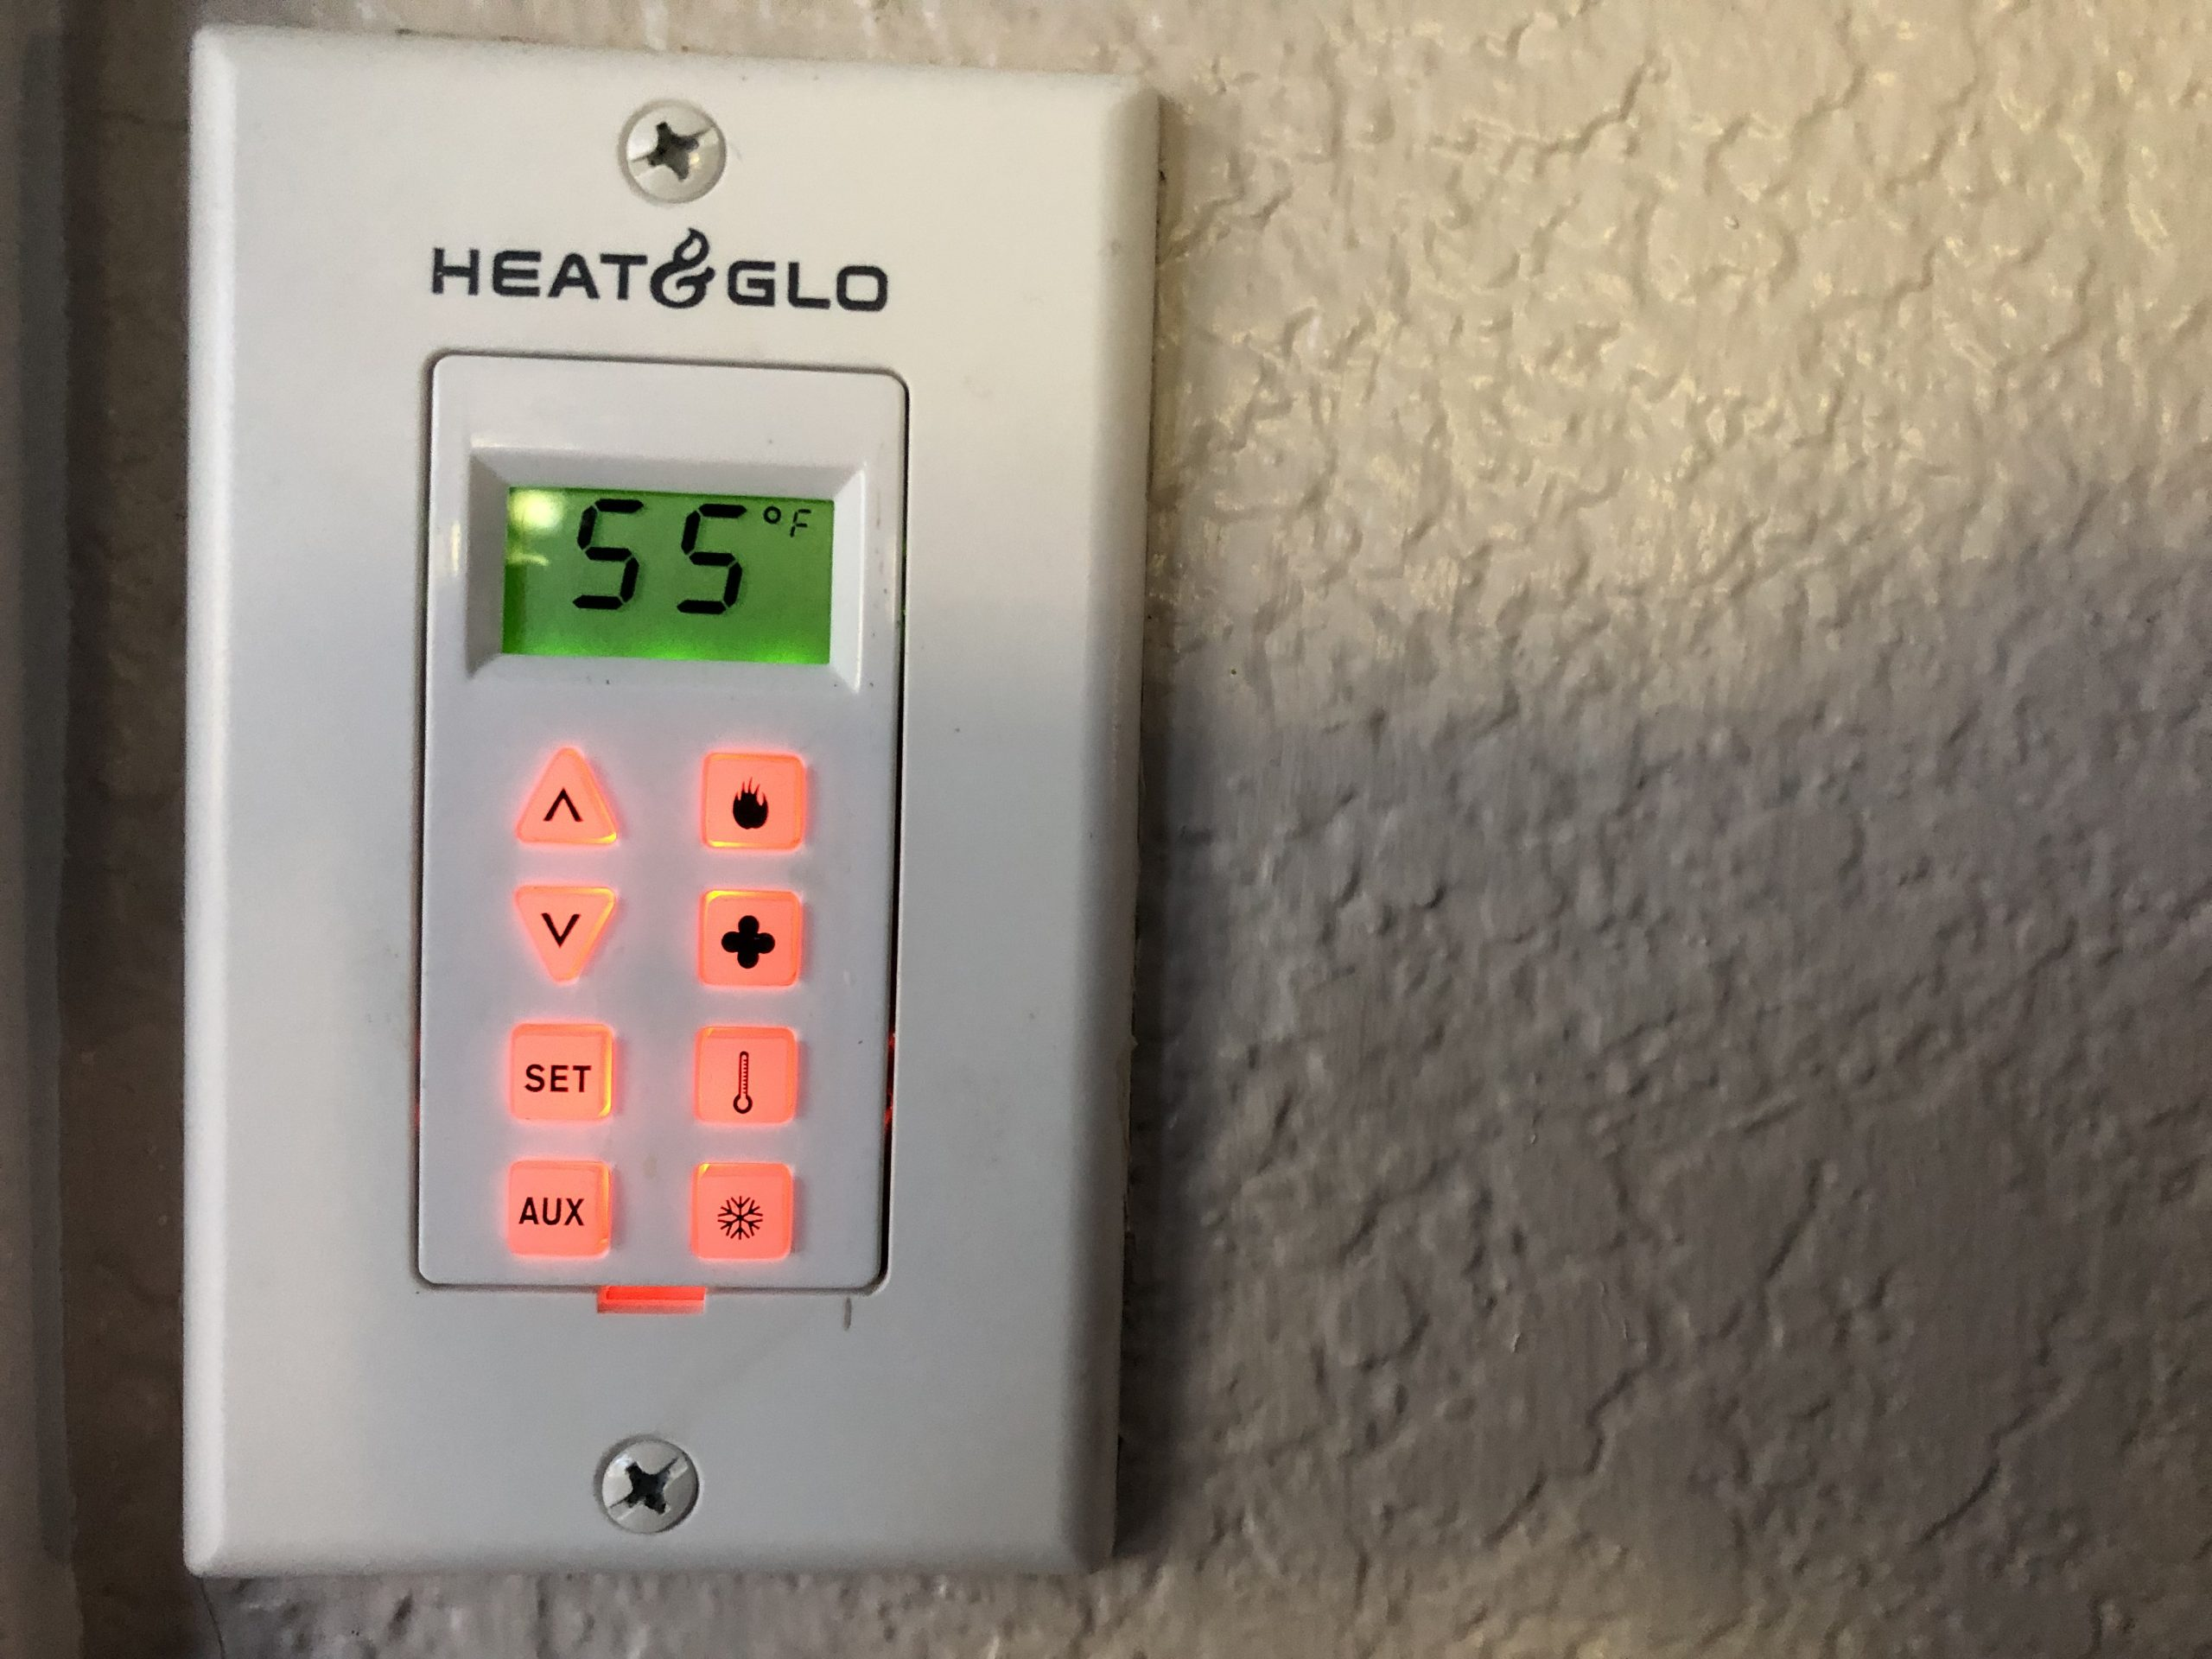 Keep the thermostat in your house set to 55 degrees during the winter and 80 degrees Fahrenheit during the summer.   (Consult a doctor first if you have health concerns).